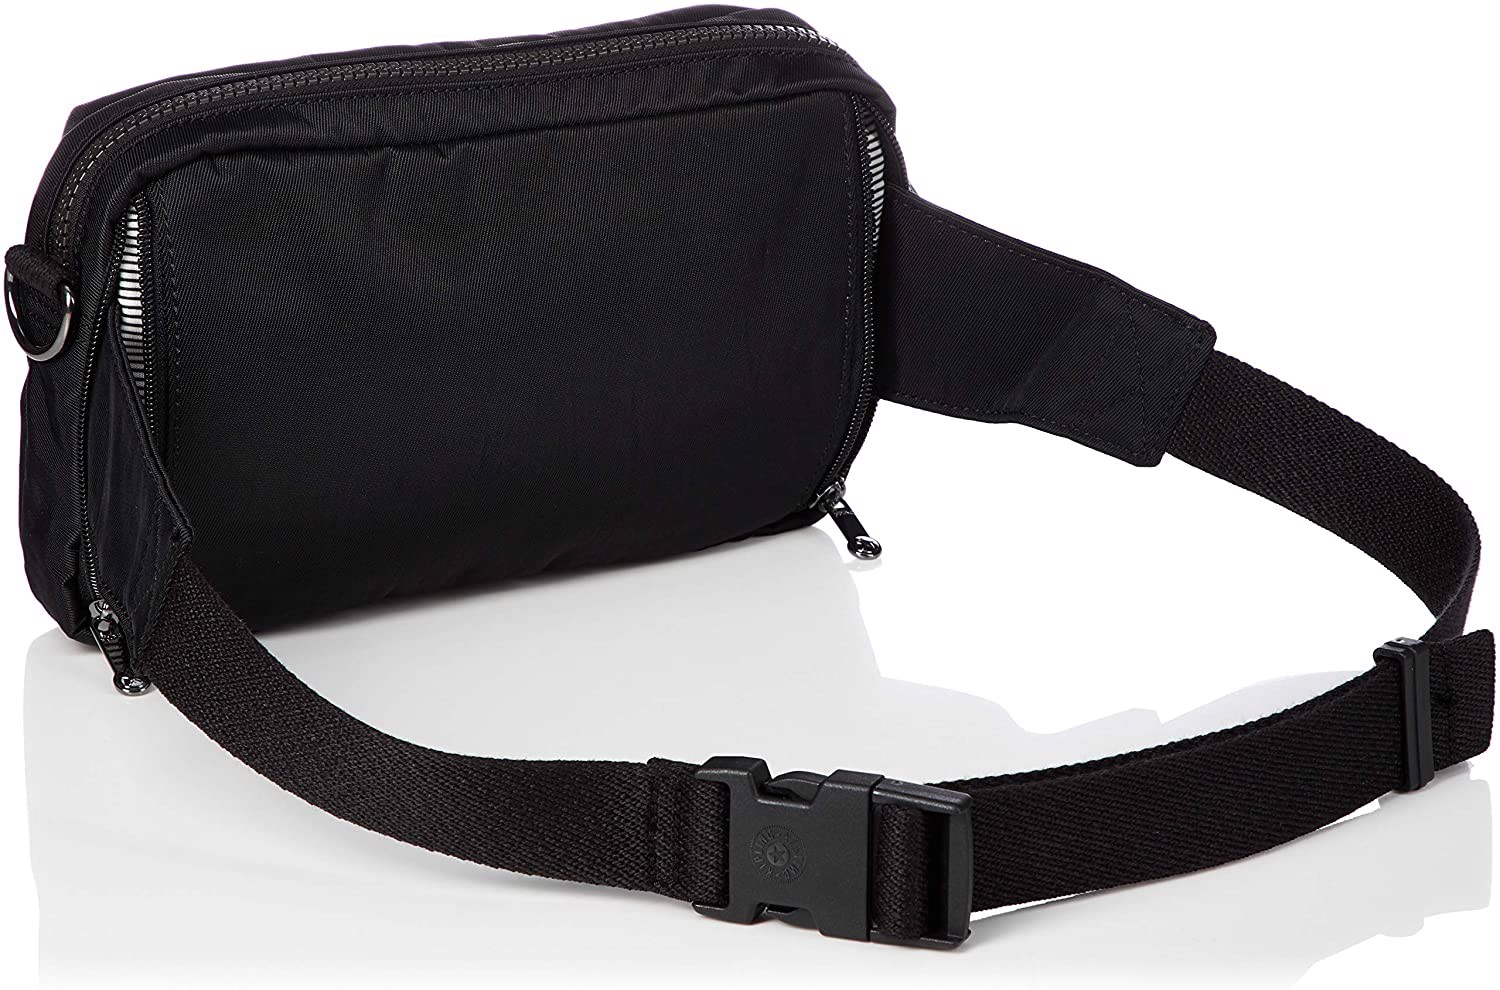 Kipling - Túi đeo chéo Halima Basic Elevated Unisex 2153F